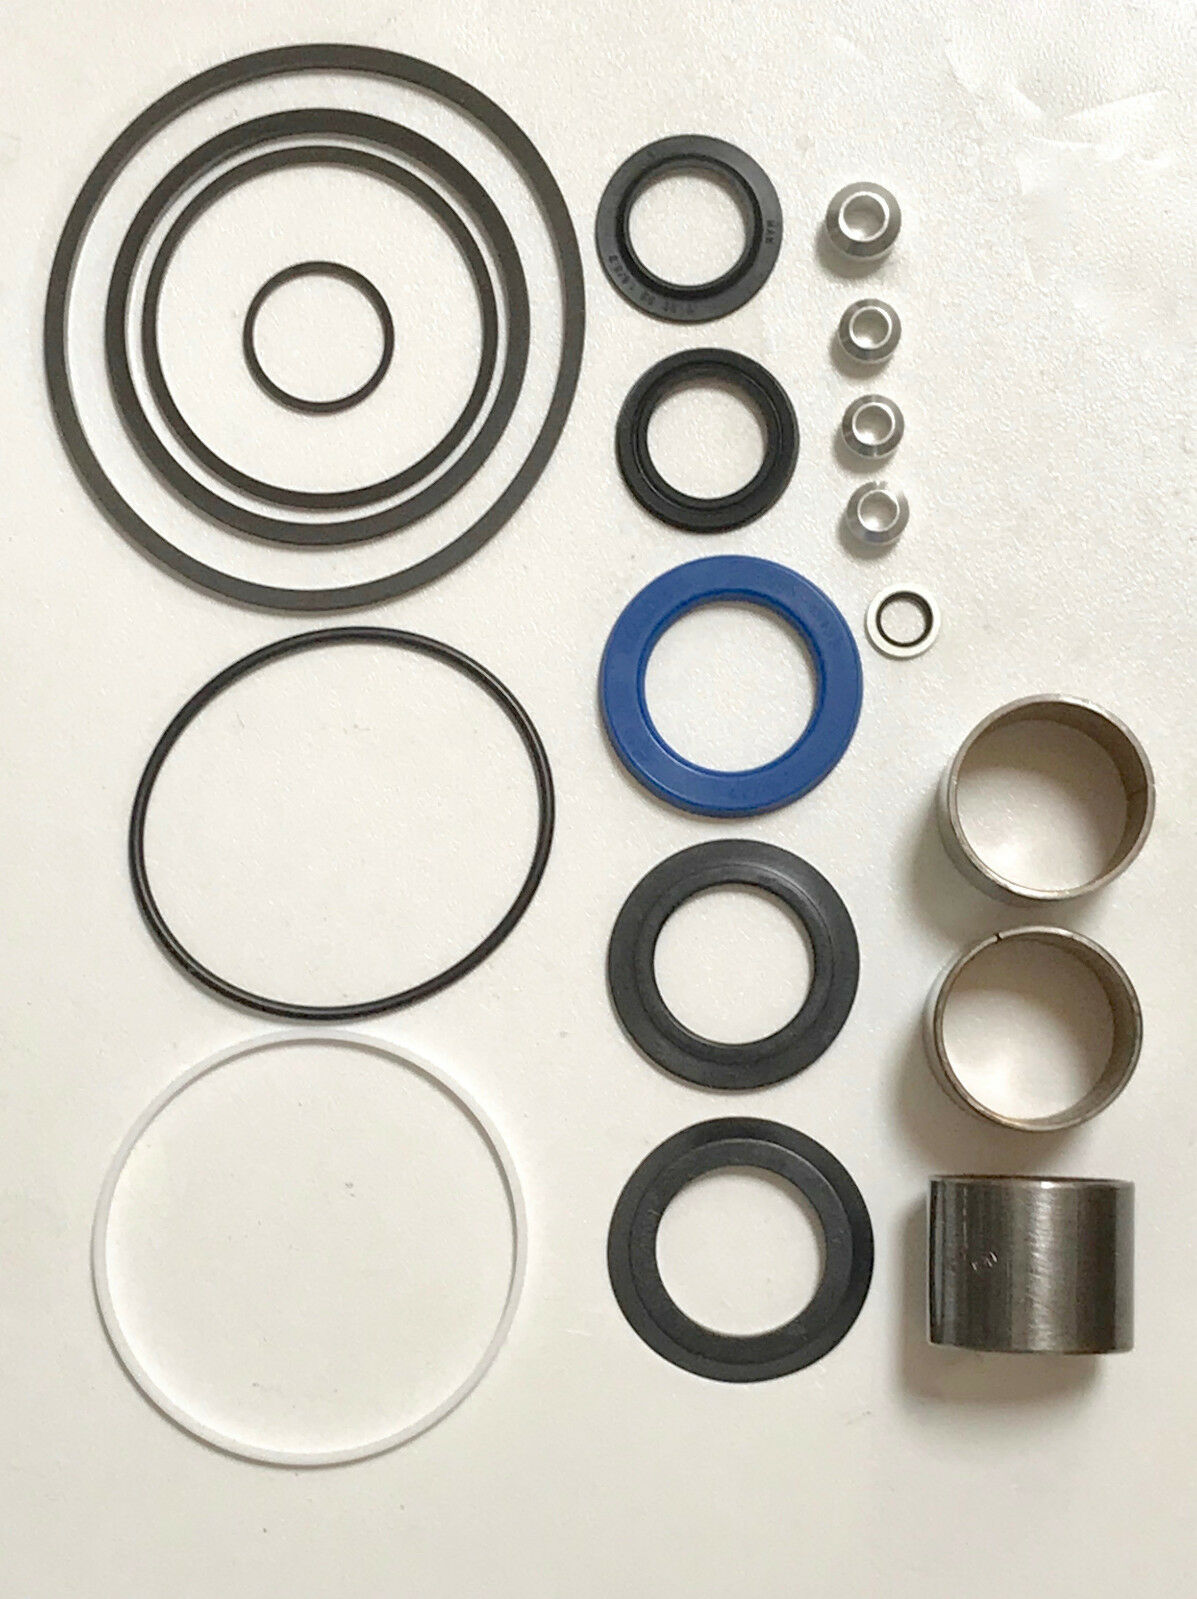 FOR LAND ROVER DEFENDER 1990-2006 NEW POWER STEERING BOX SEAL KIT STC2847